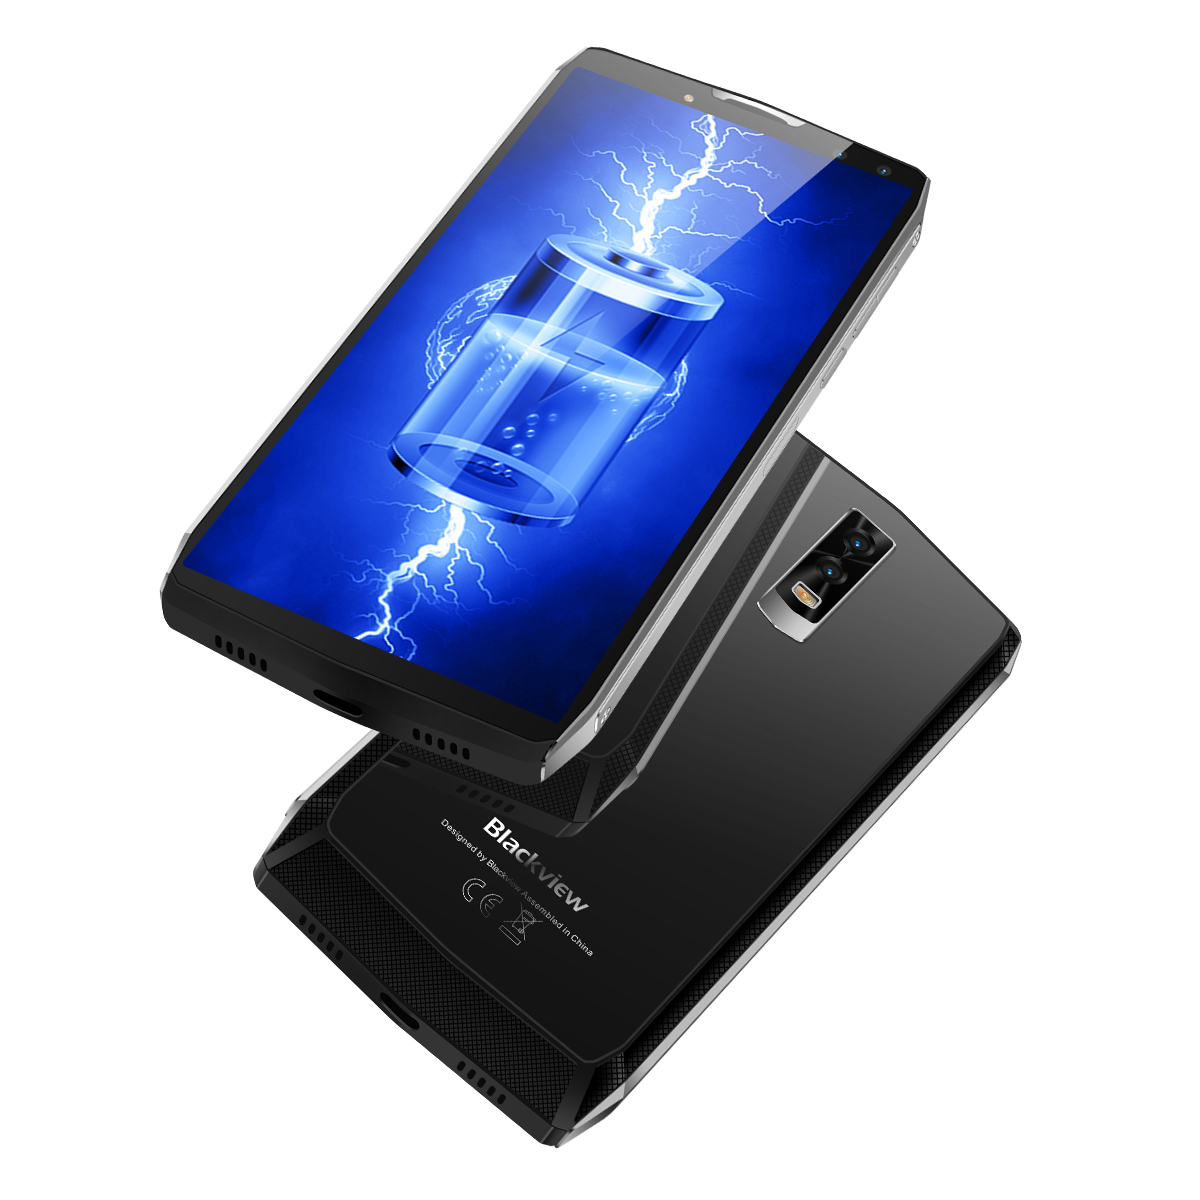 images/bulk-wholesale/HK-Warehouse-Pre-Order-Blackview-P10000-Pro-Phone-Octa-Core-CPU-Android-71-11000mAh-Dual-Rear-Dual-Front-Cam-Sliver-plusbuyer_9.jpg